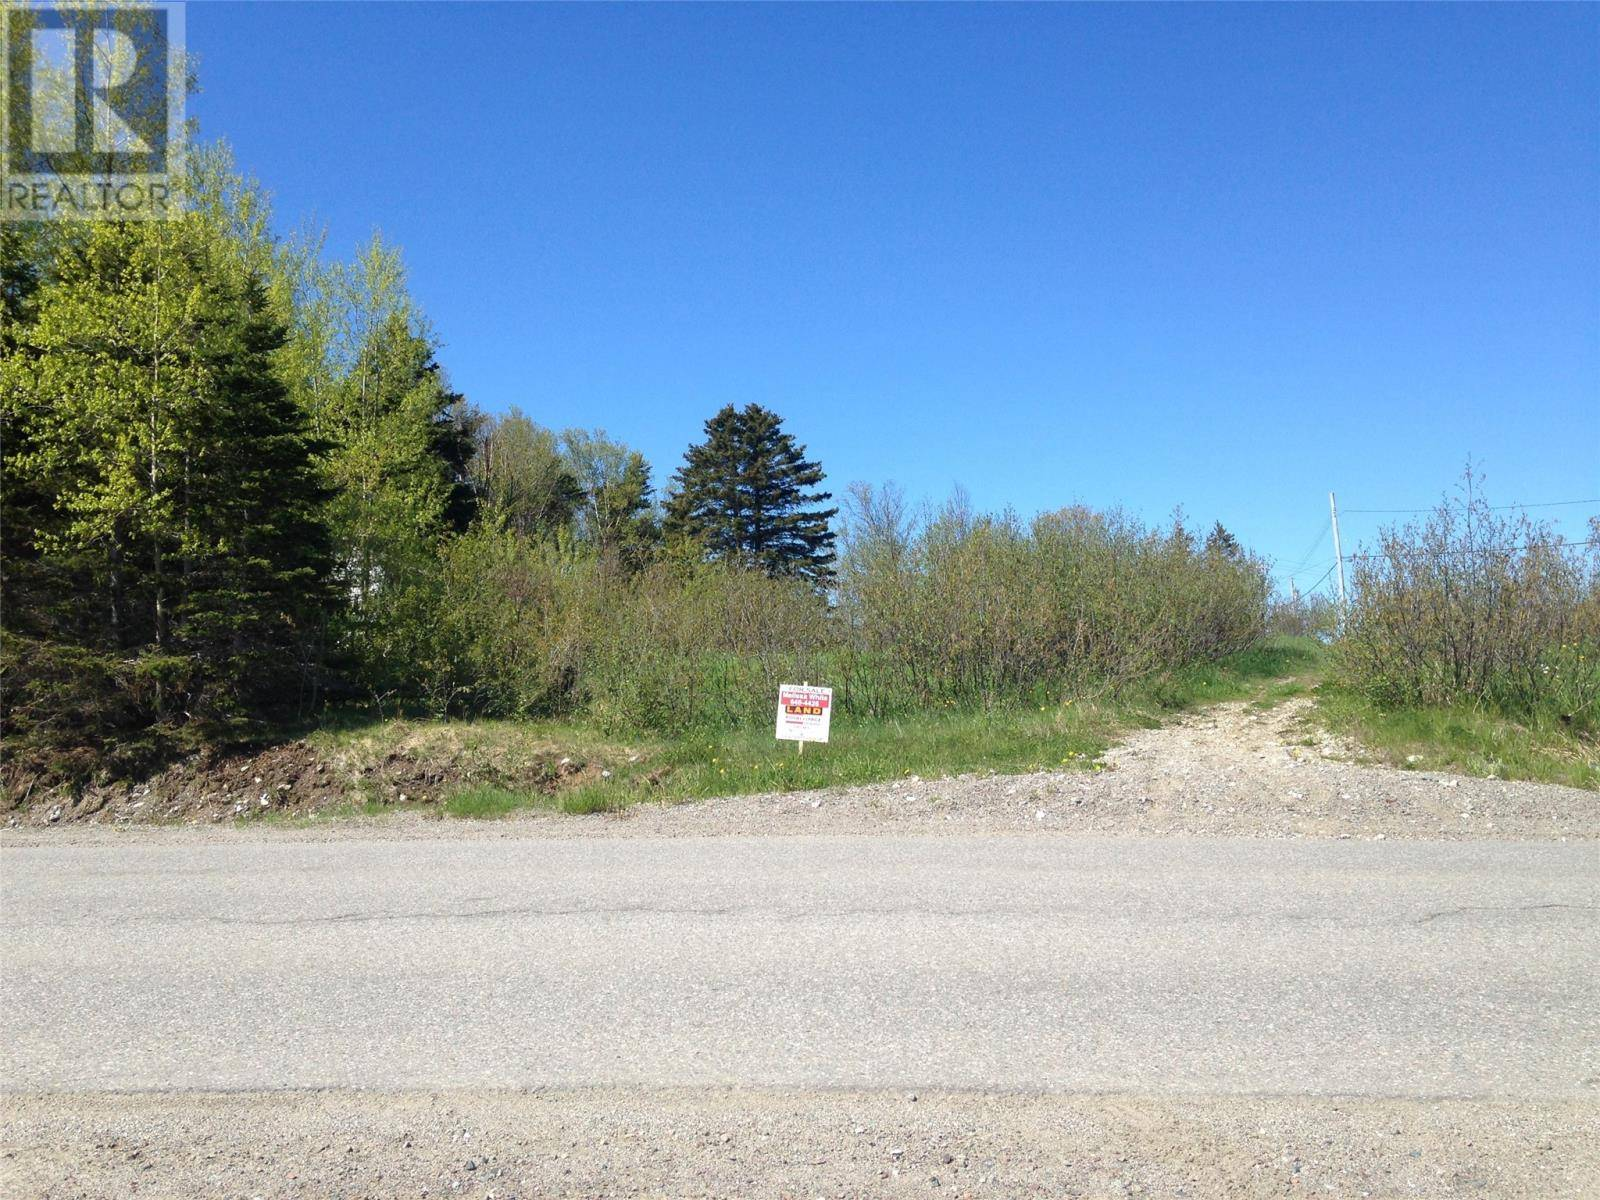 Home for sale at 62 Steel Mountain Rd St. George's Newfoundland - MLS: 1157483